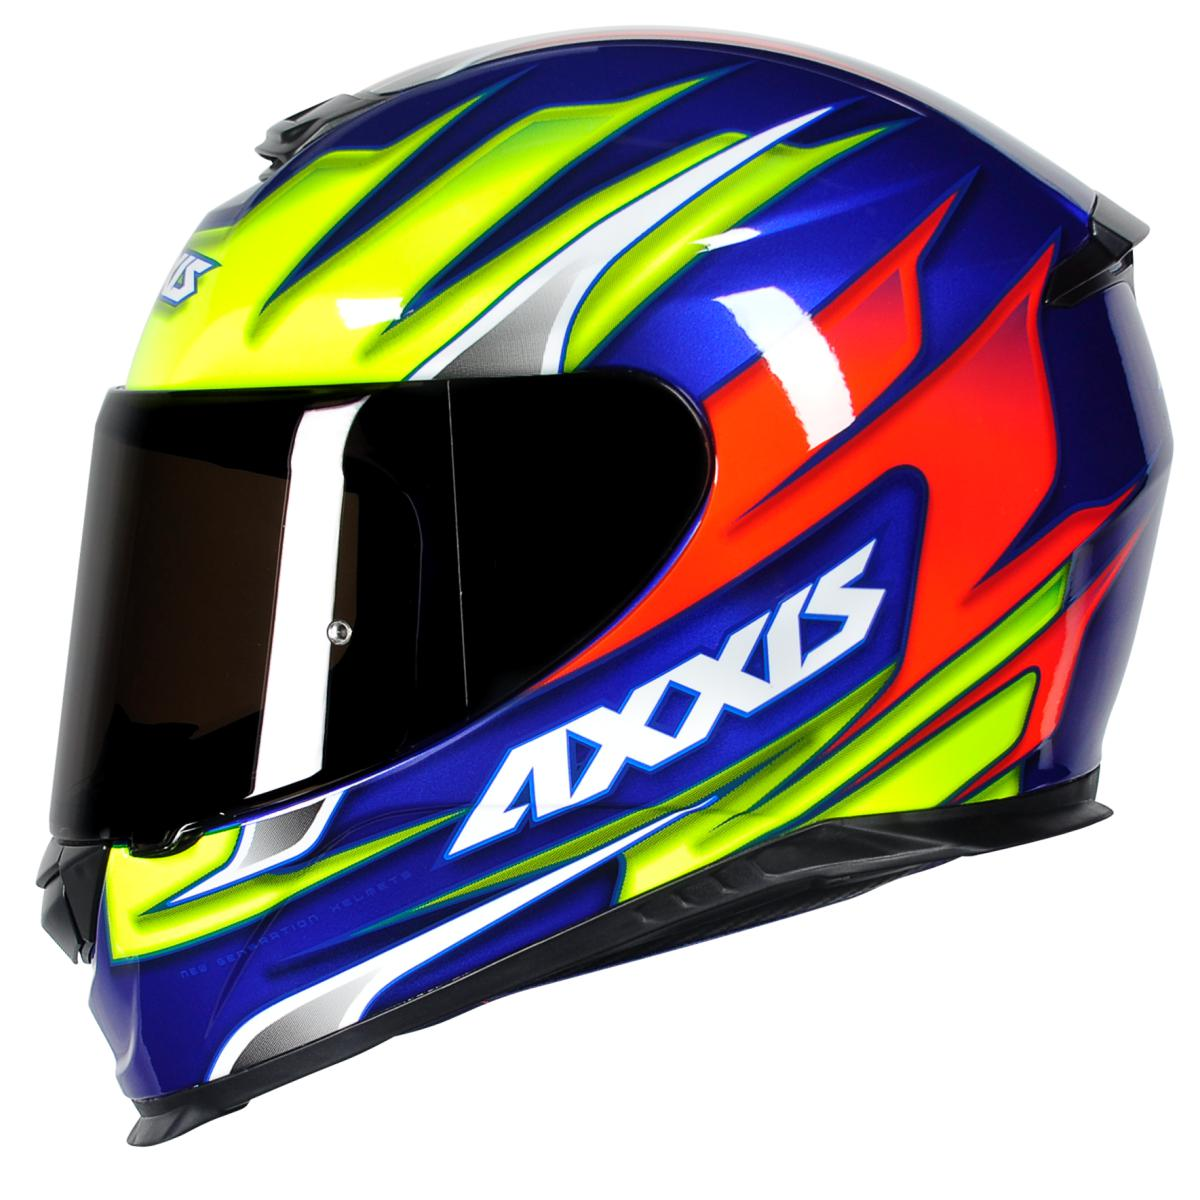 CAPACETE DE MOTOCICLISTA AXXIS EAGLE SPEED GLOSS BLUE YELLOW